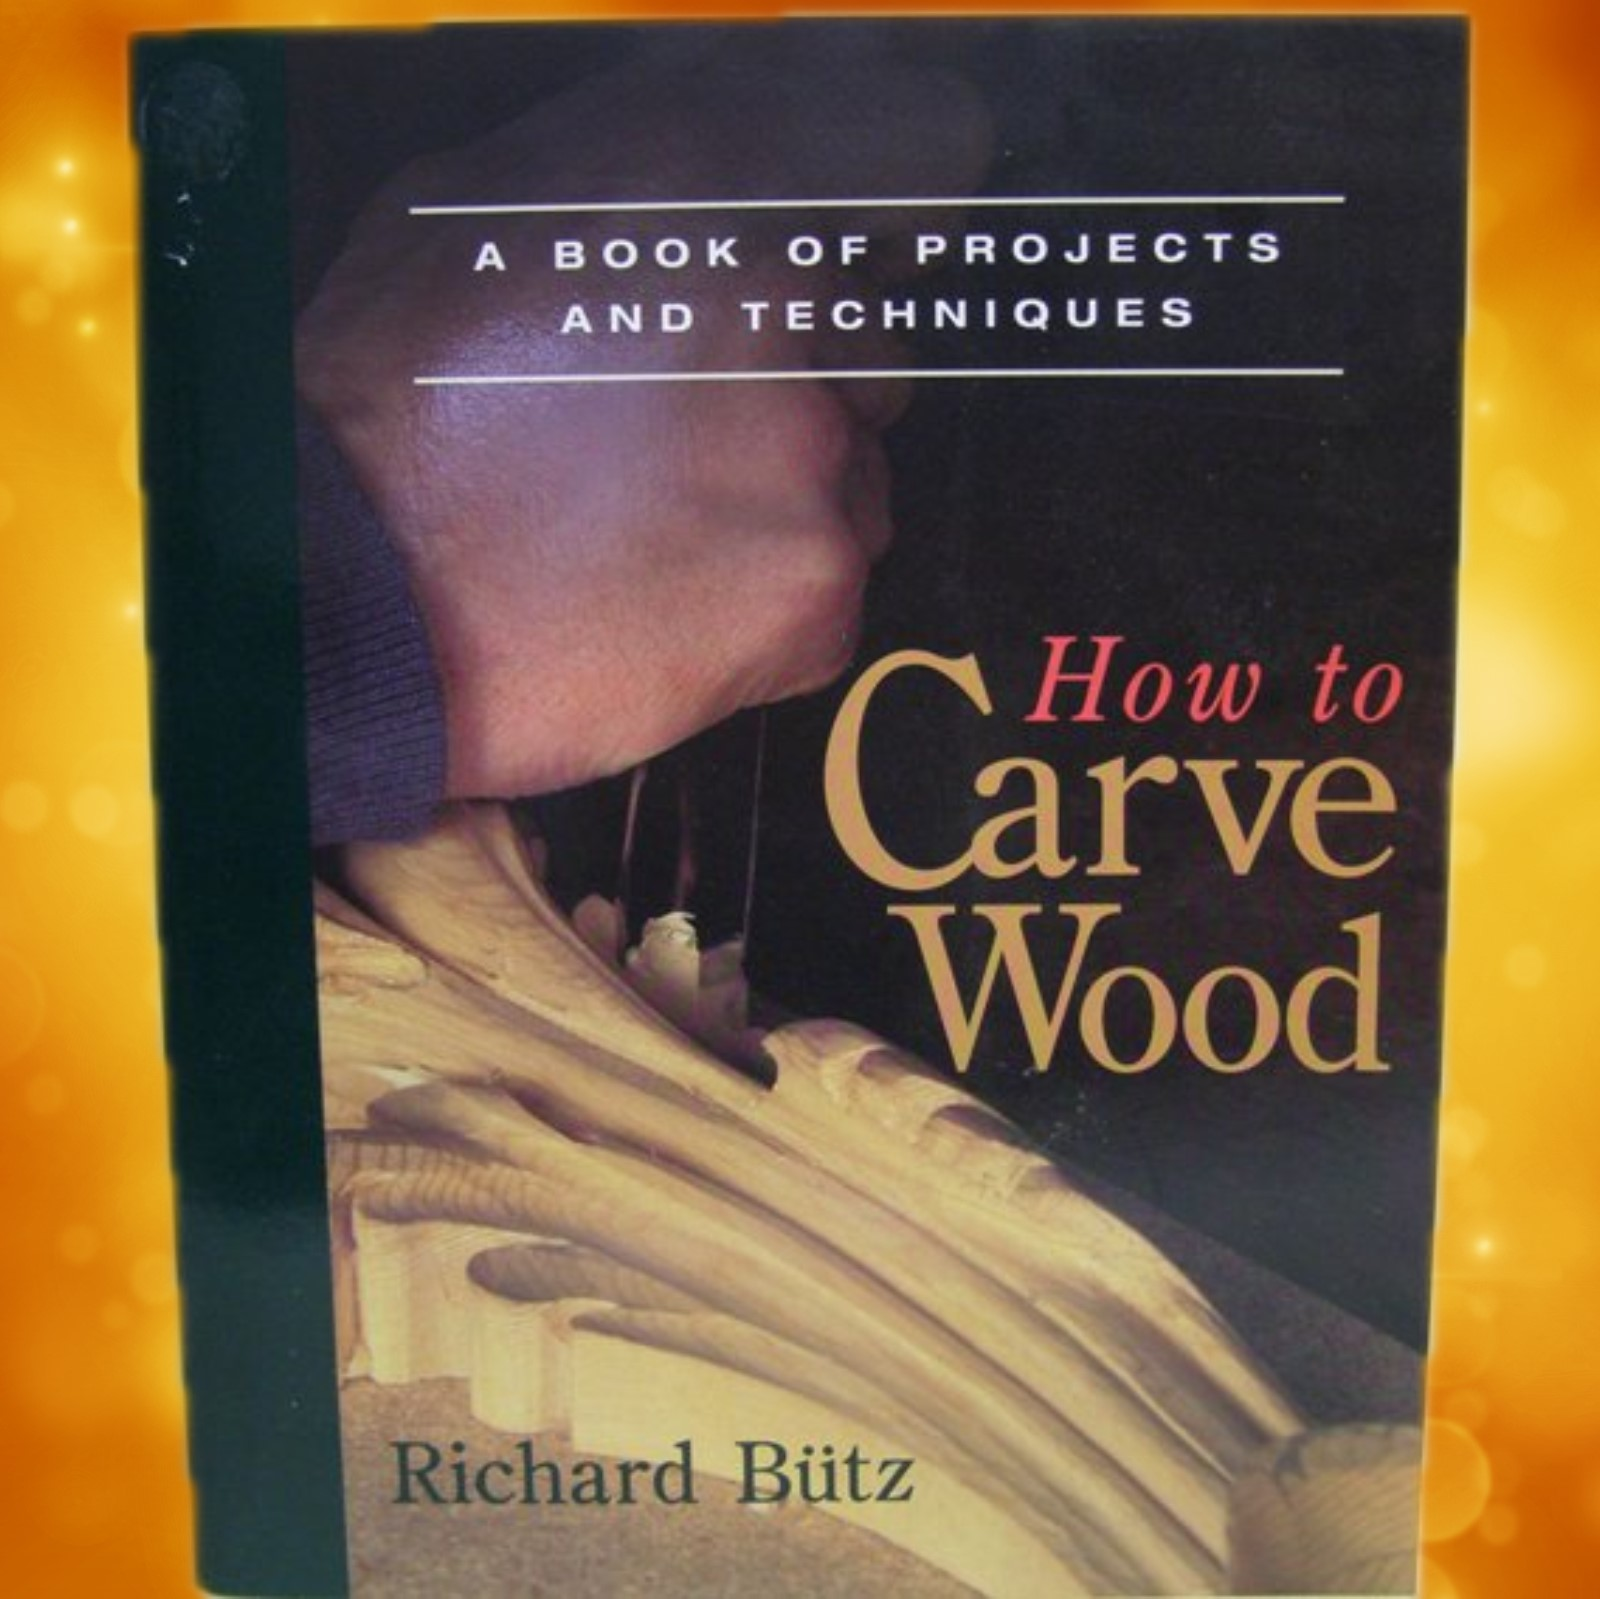 How To Carve Wood- Richard Butz ISBN0-918804-20-5